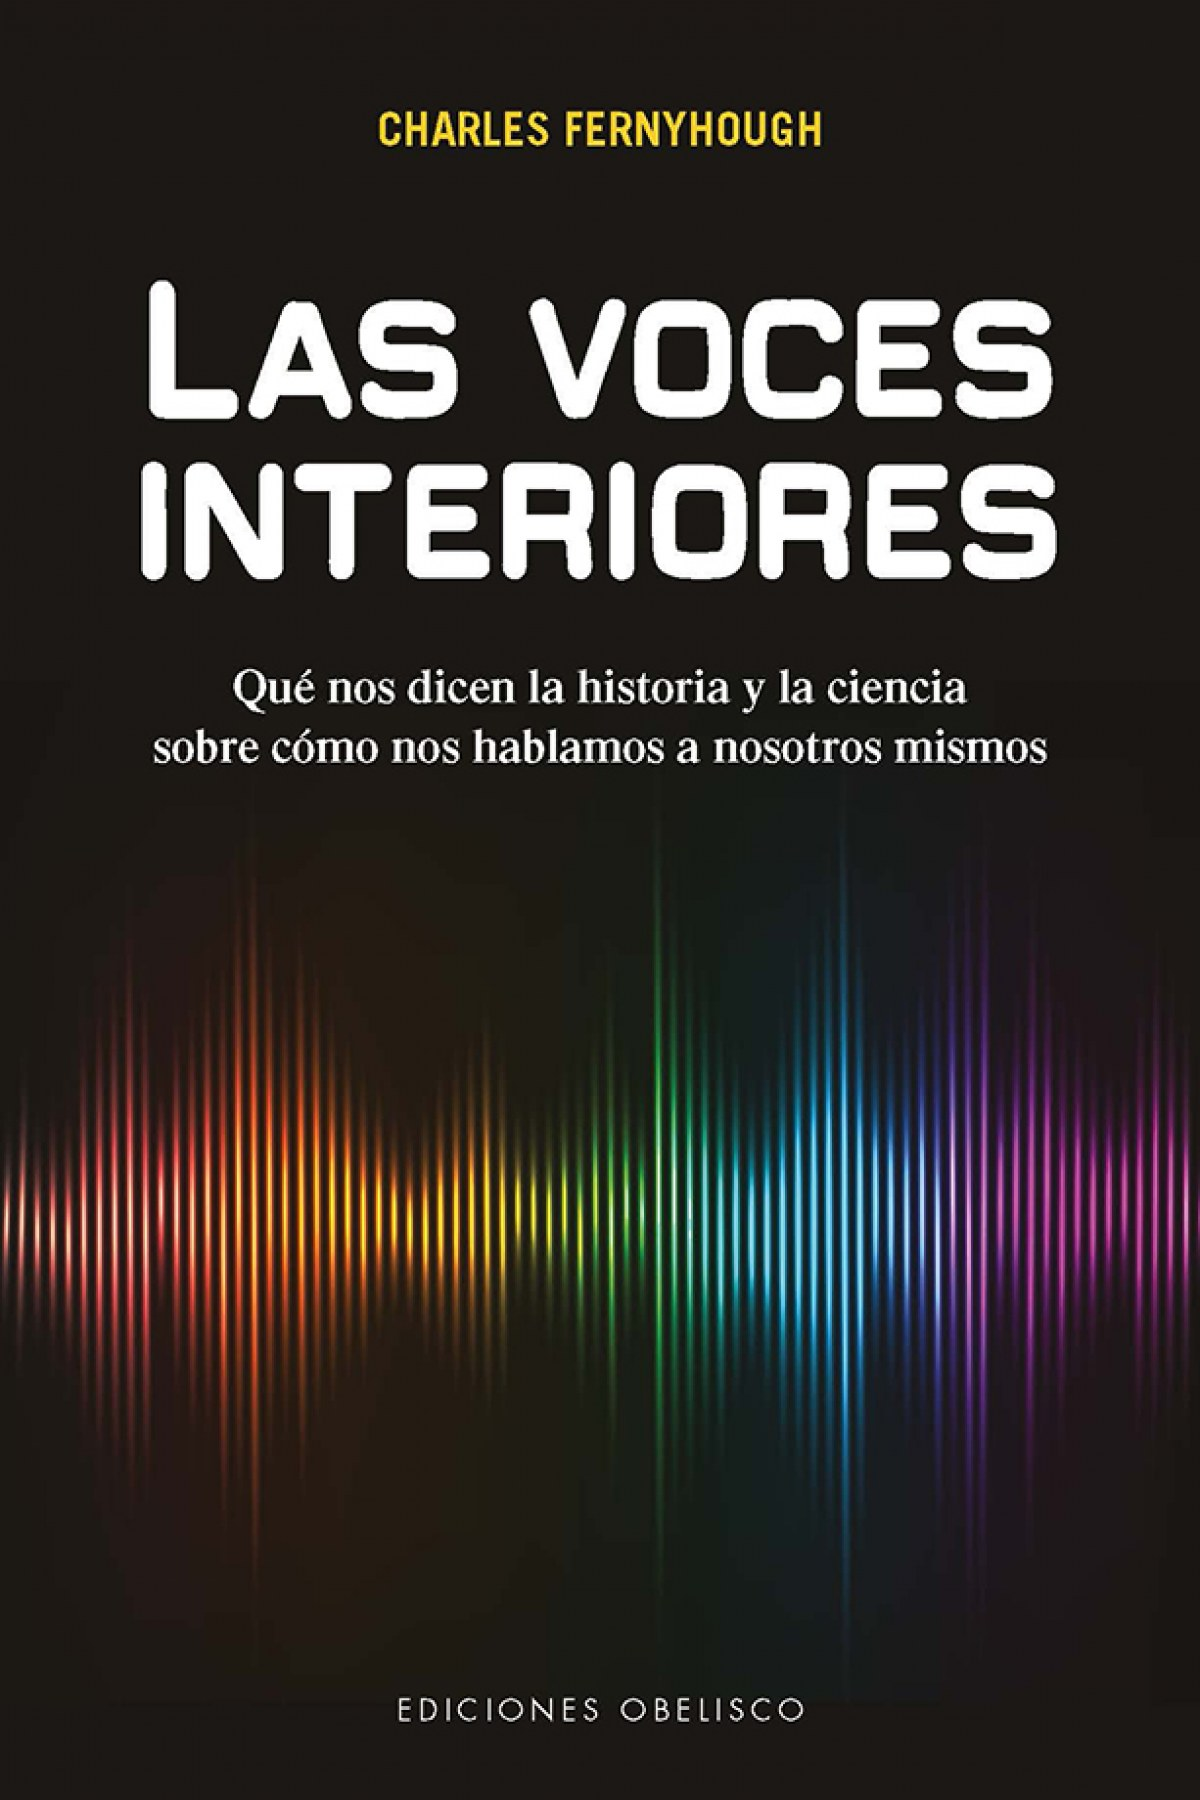 LAS VOCES INTERIORES